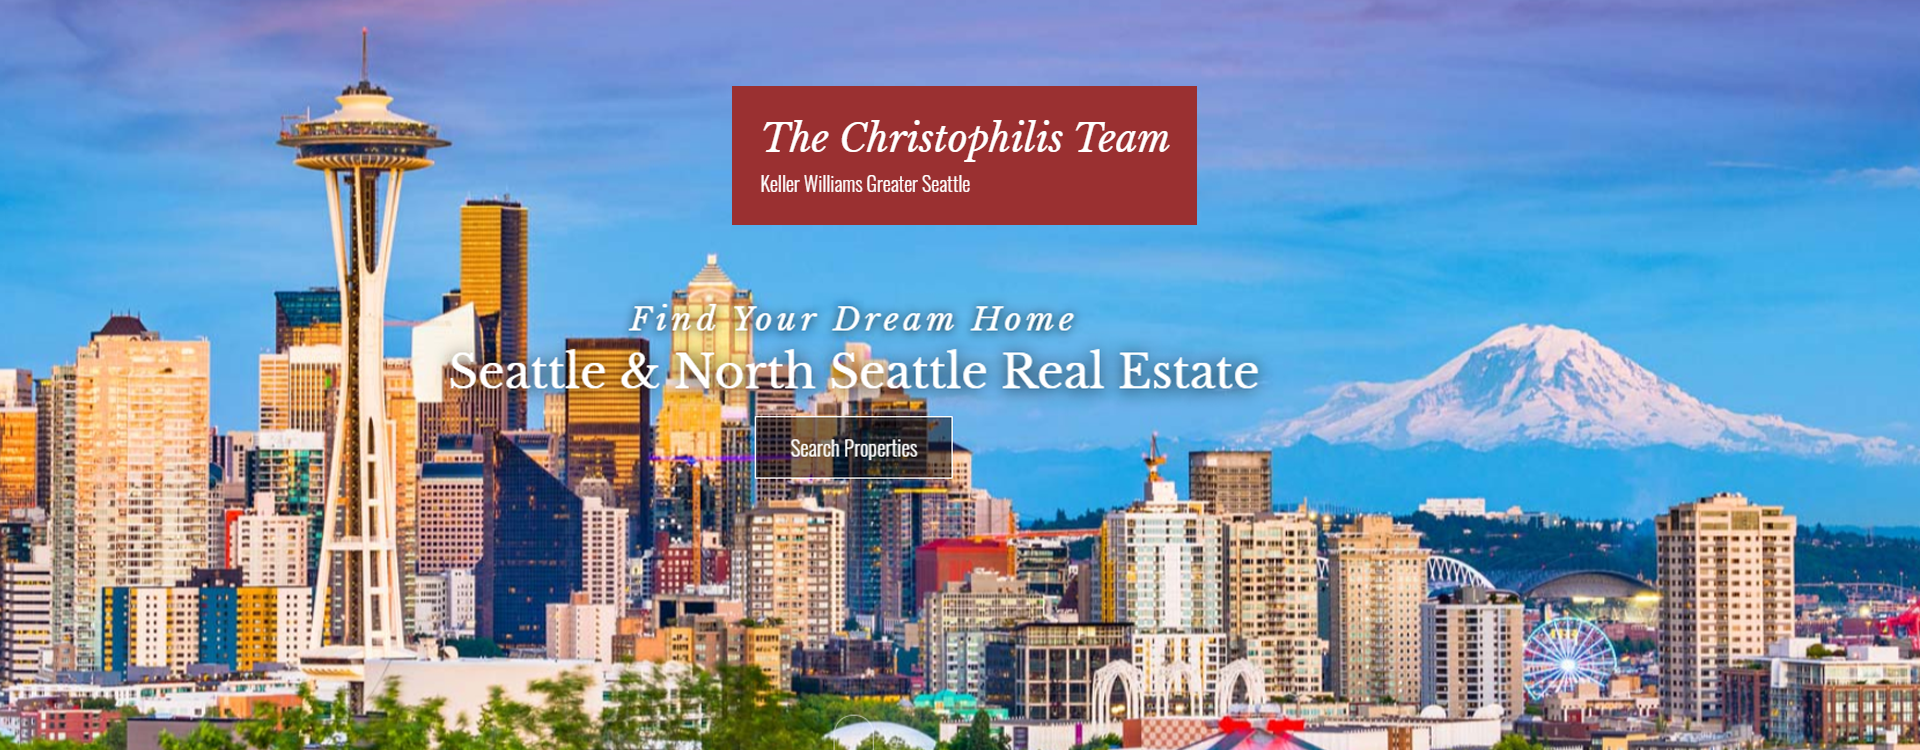 Christophilis Team-Keller Williams Realty Seattle Real Estate